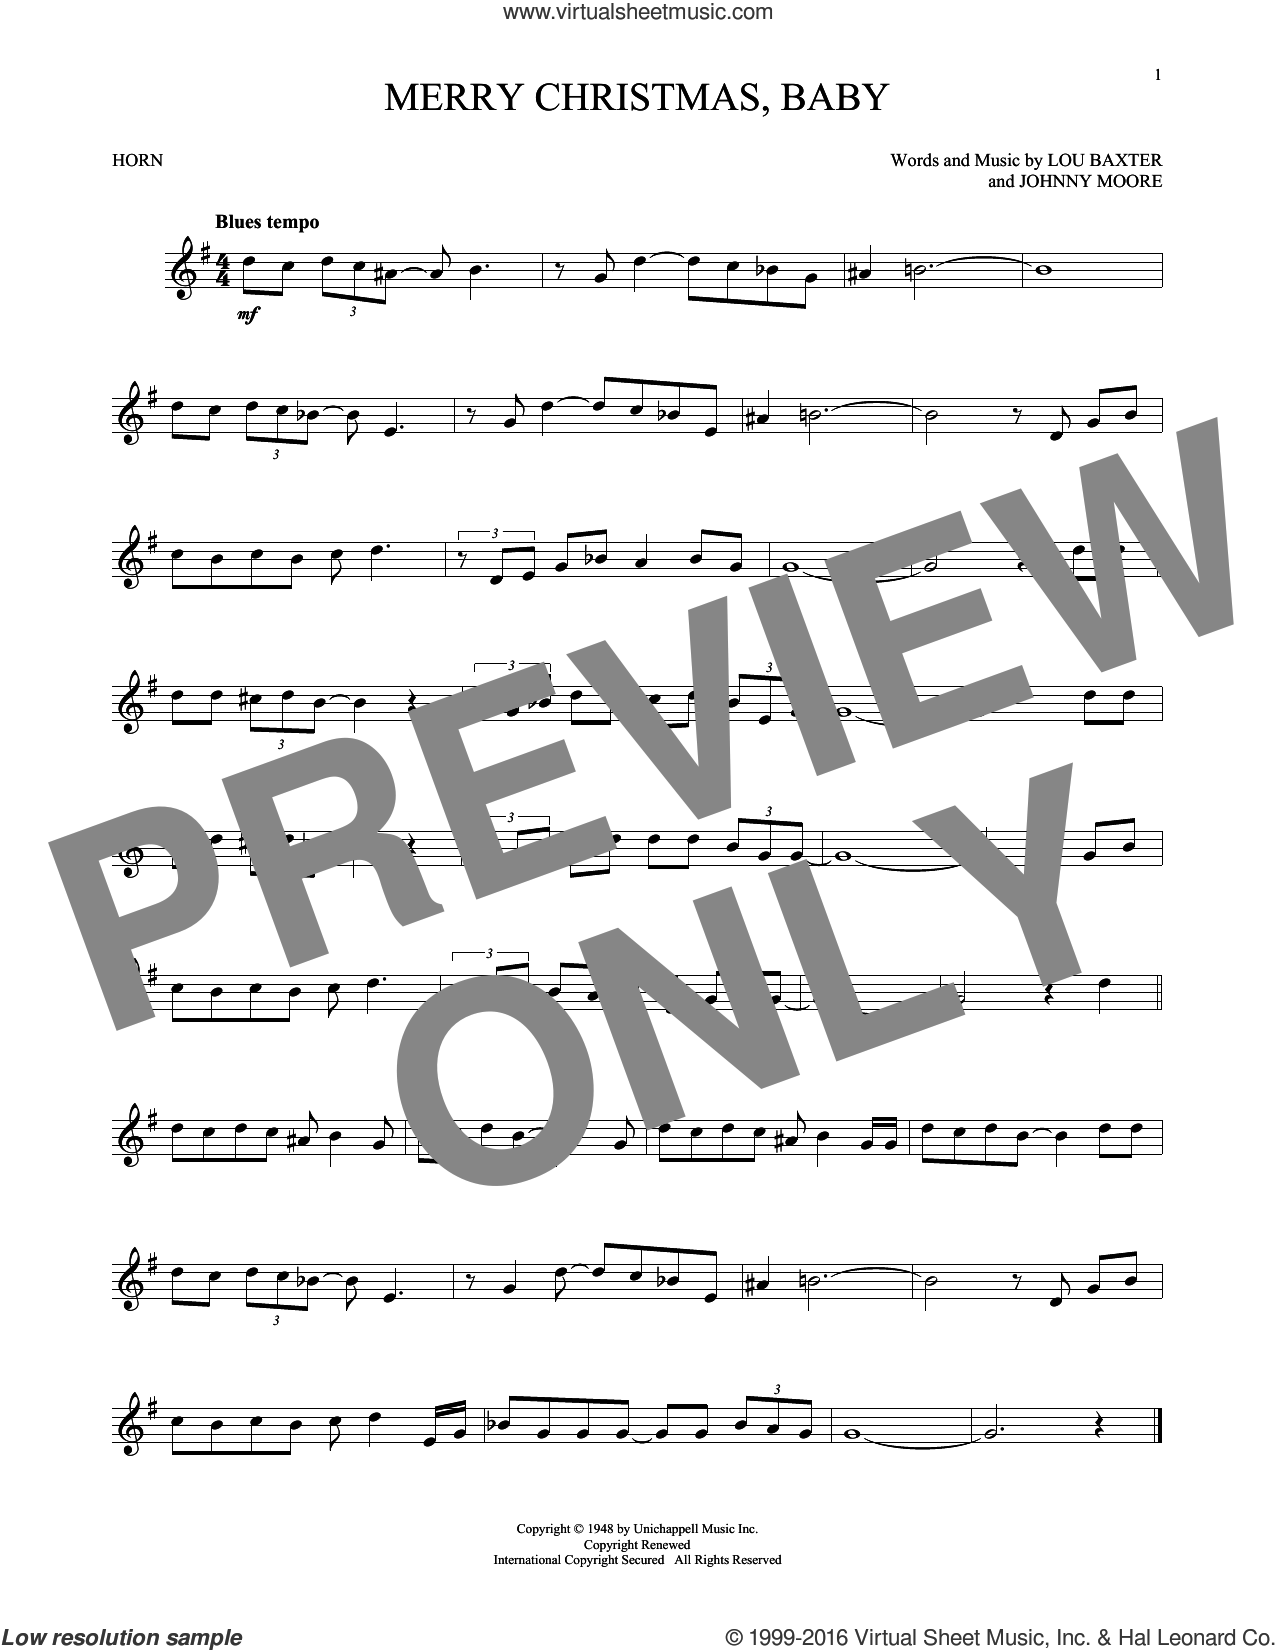 Merry Christmas, Baby sheet music for horn solo by Elvis Presley, Johnny Moore and Lou Baxter, intermediate skill level